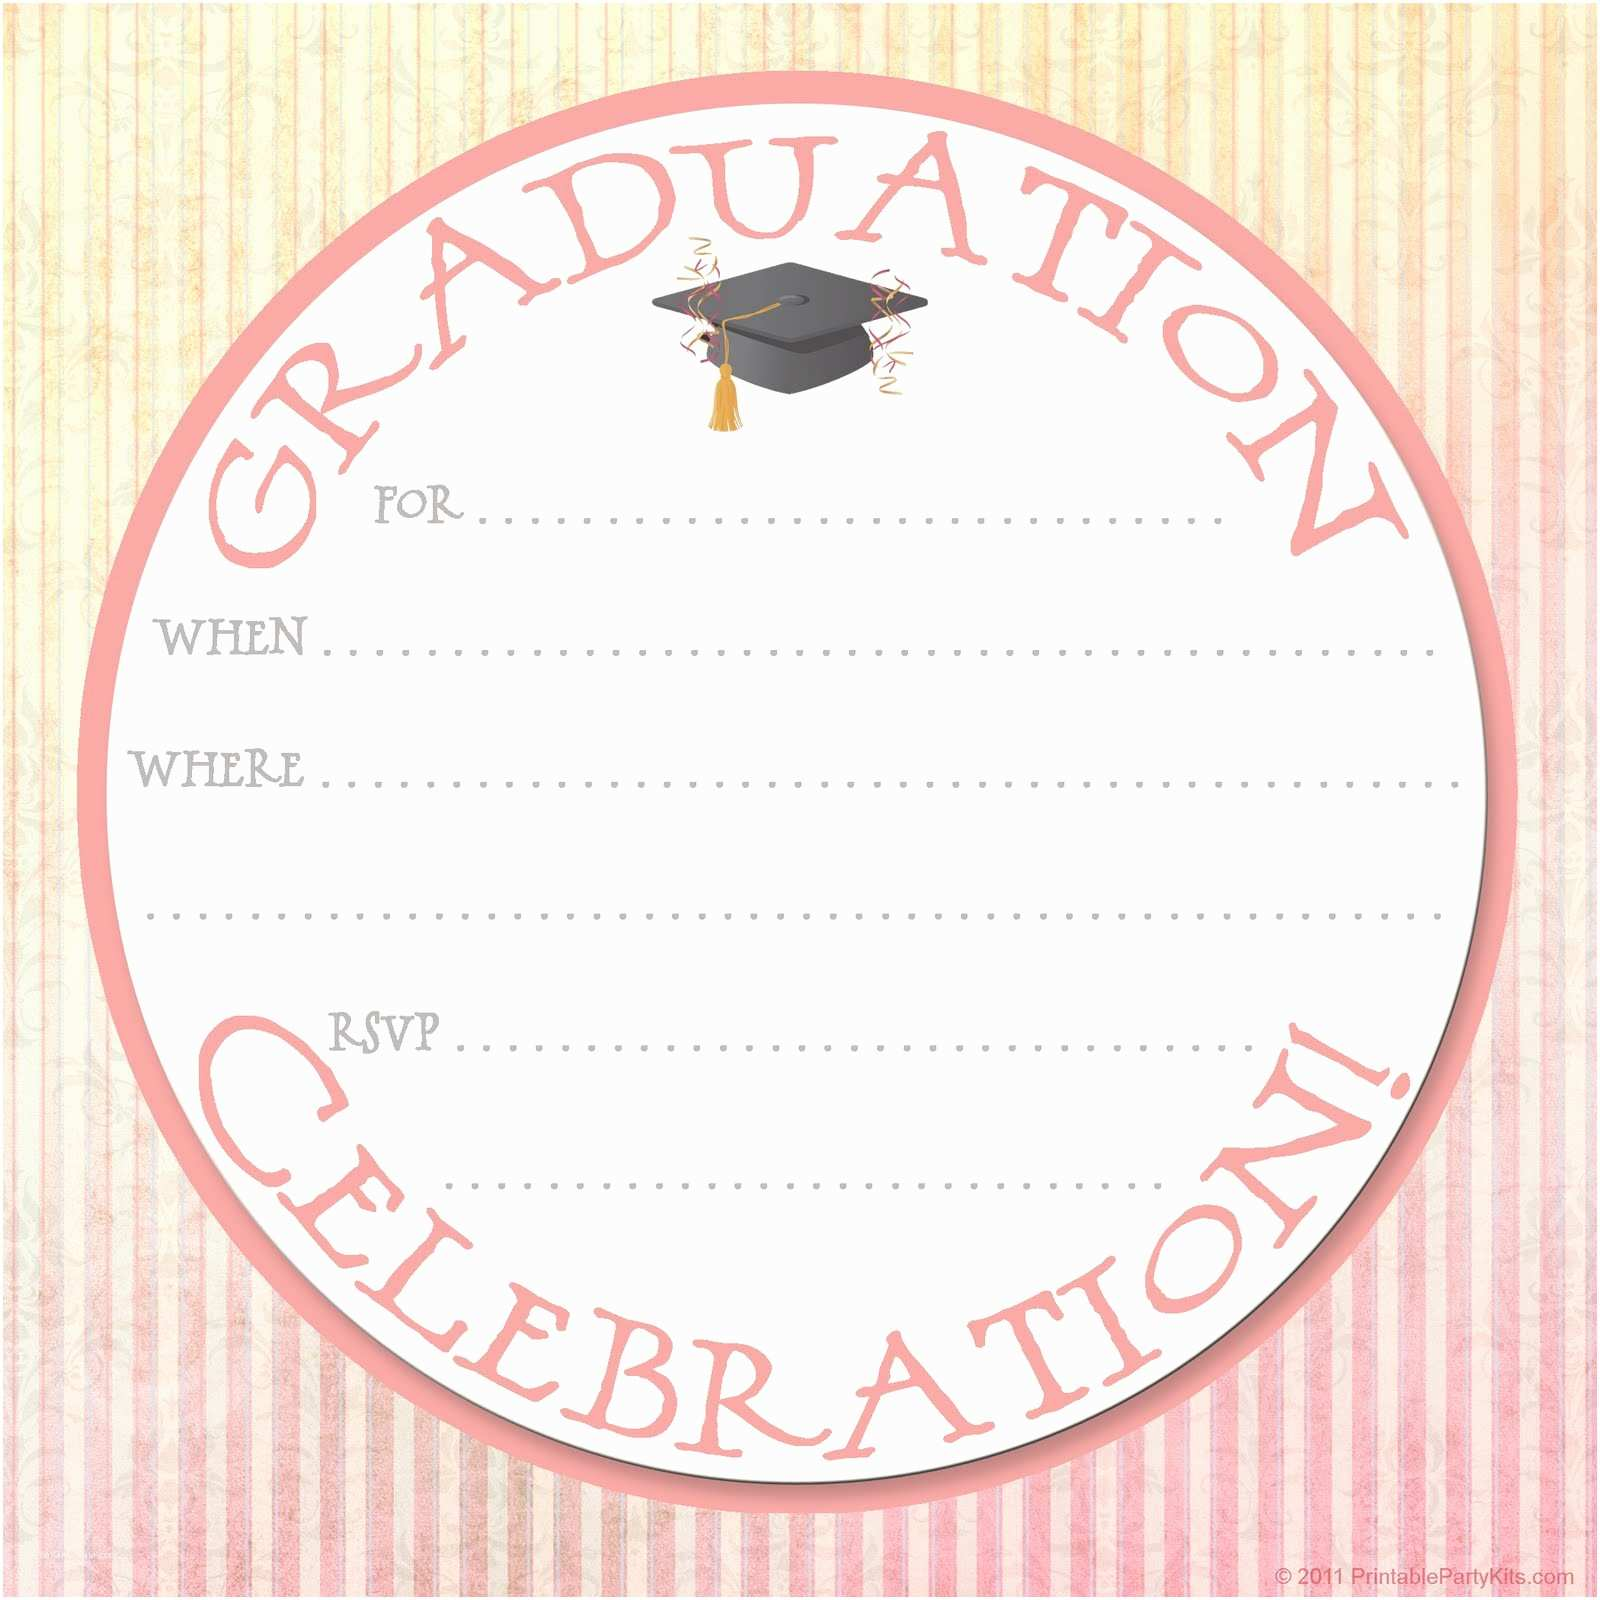 Create Graduation Invitations Tips Easy to Create Party Express Invitations Designs